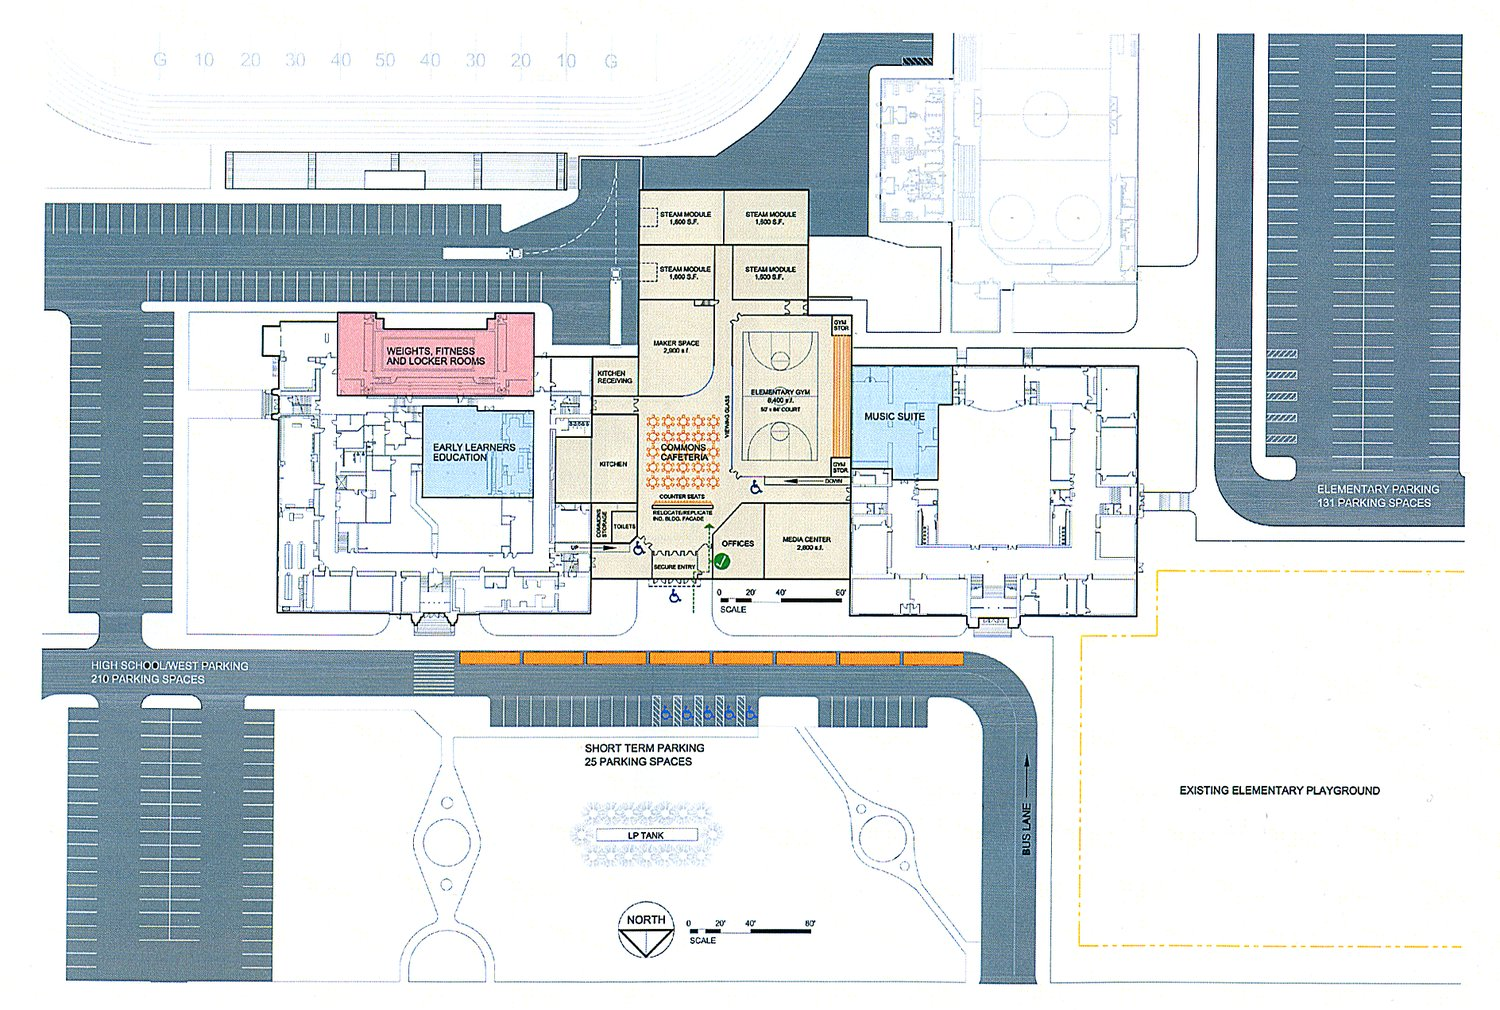 A revised site plan for the Ely school campus shows the full-size gymnasium in the addition between the Washington and Memorial buildings, and the expanded parking lots and student drop-off areas. submitted by Architectural Resources, Inc.